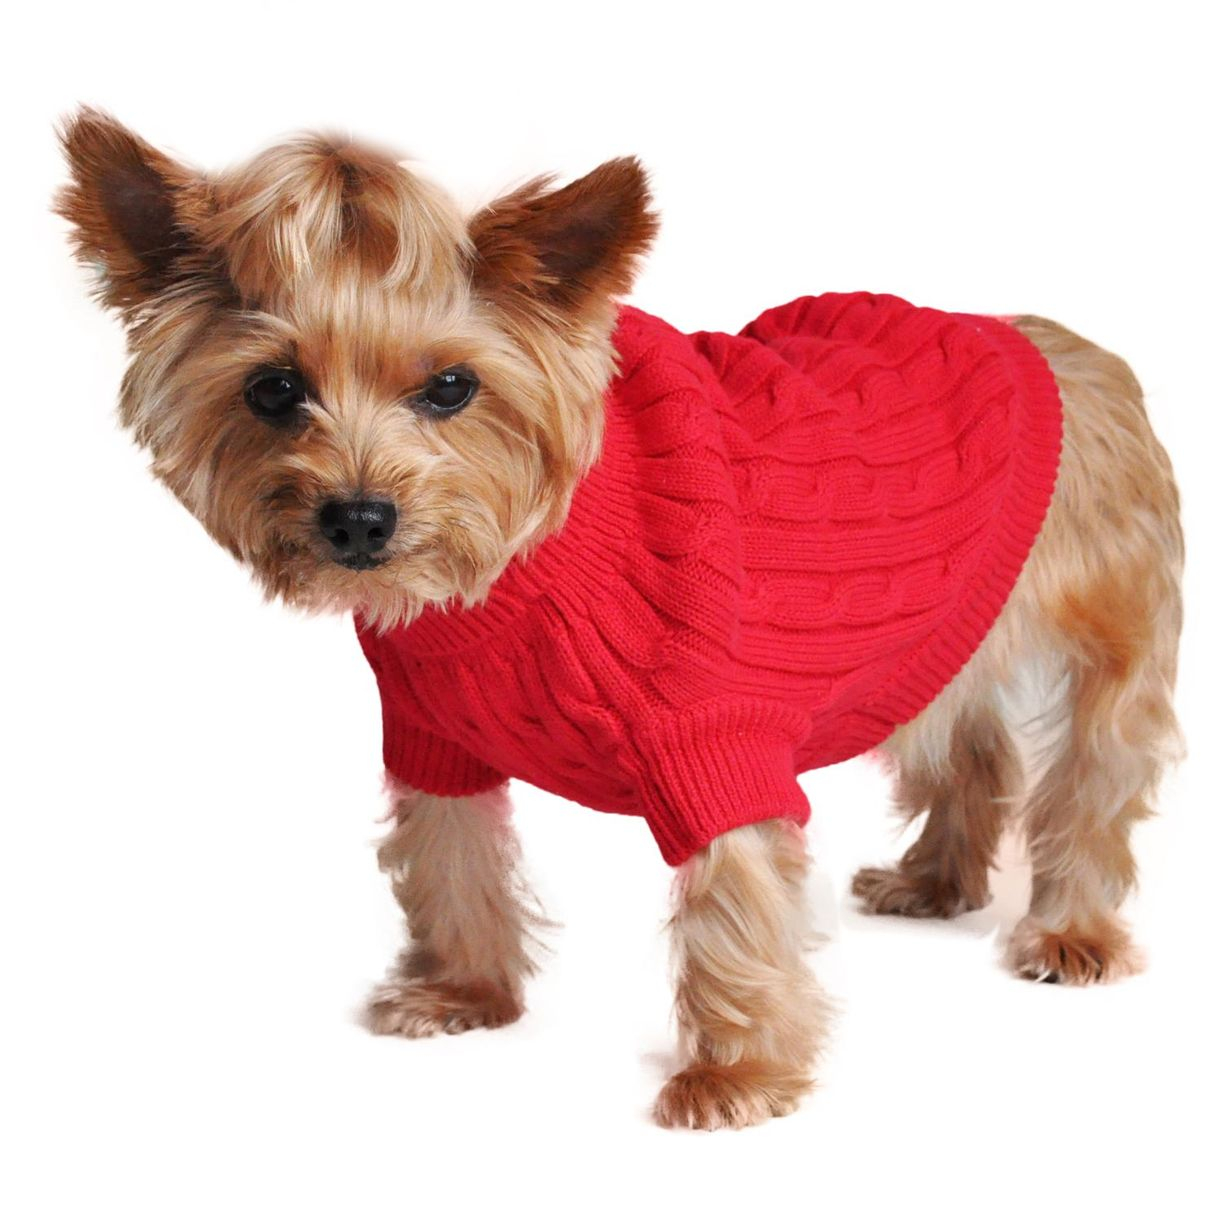 Dog Sweater Knitting Pattern Cotton Cable Knit Dog Sweater Pattern Free Hypoallergenic Dog Sweater